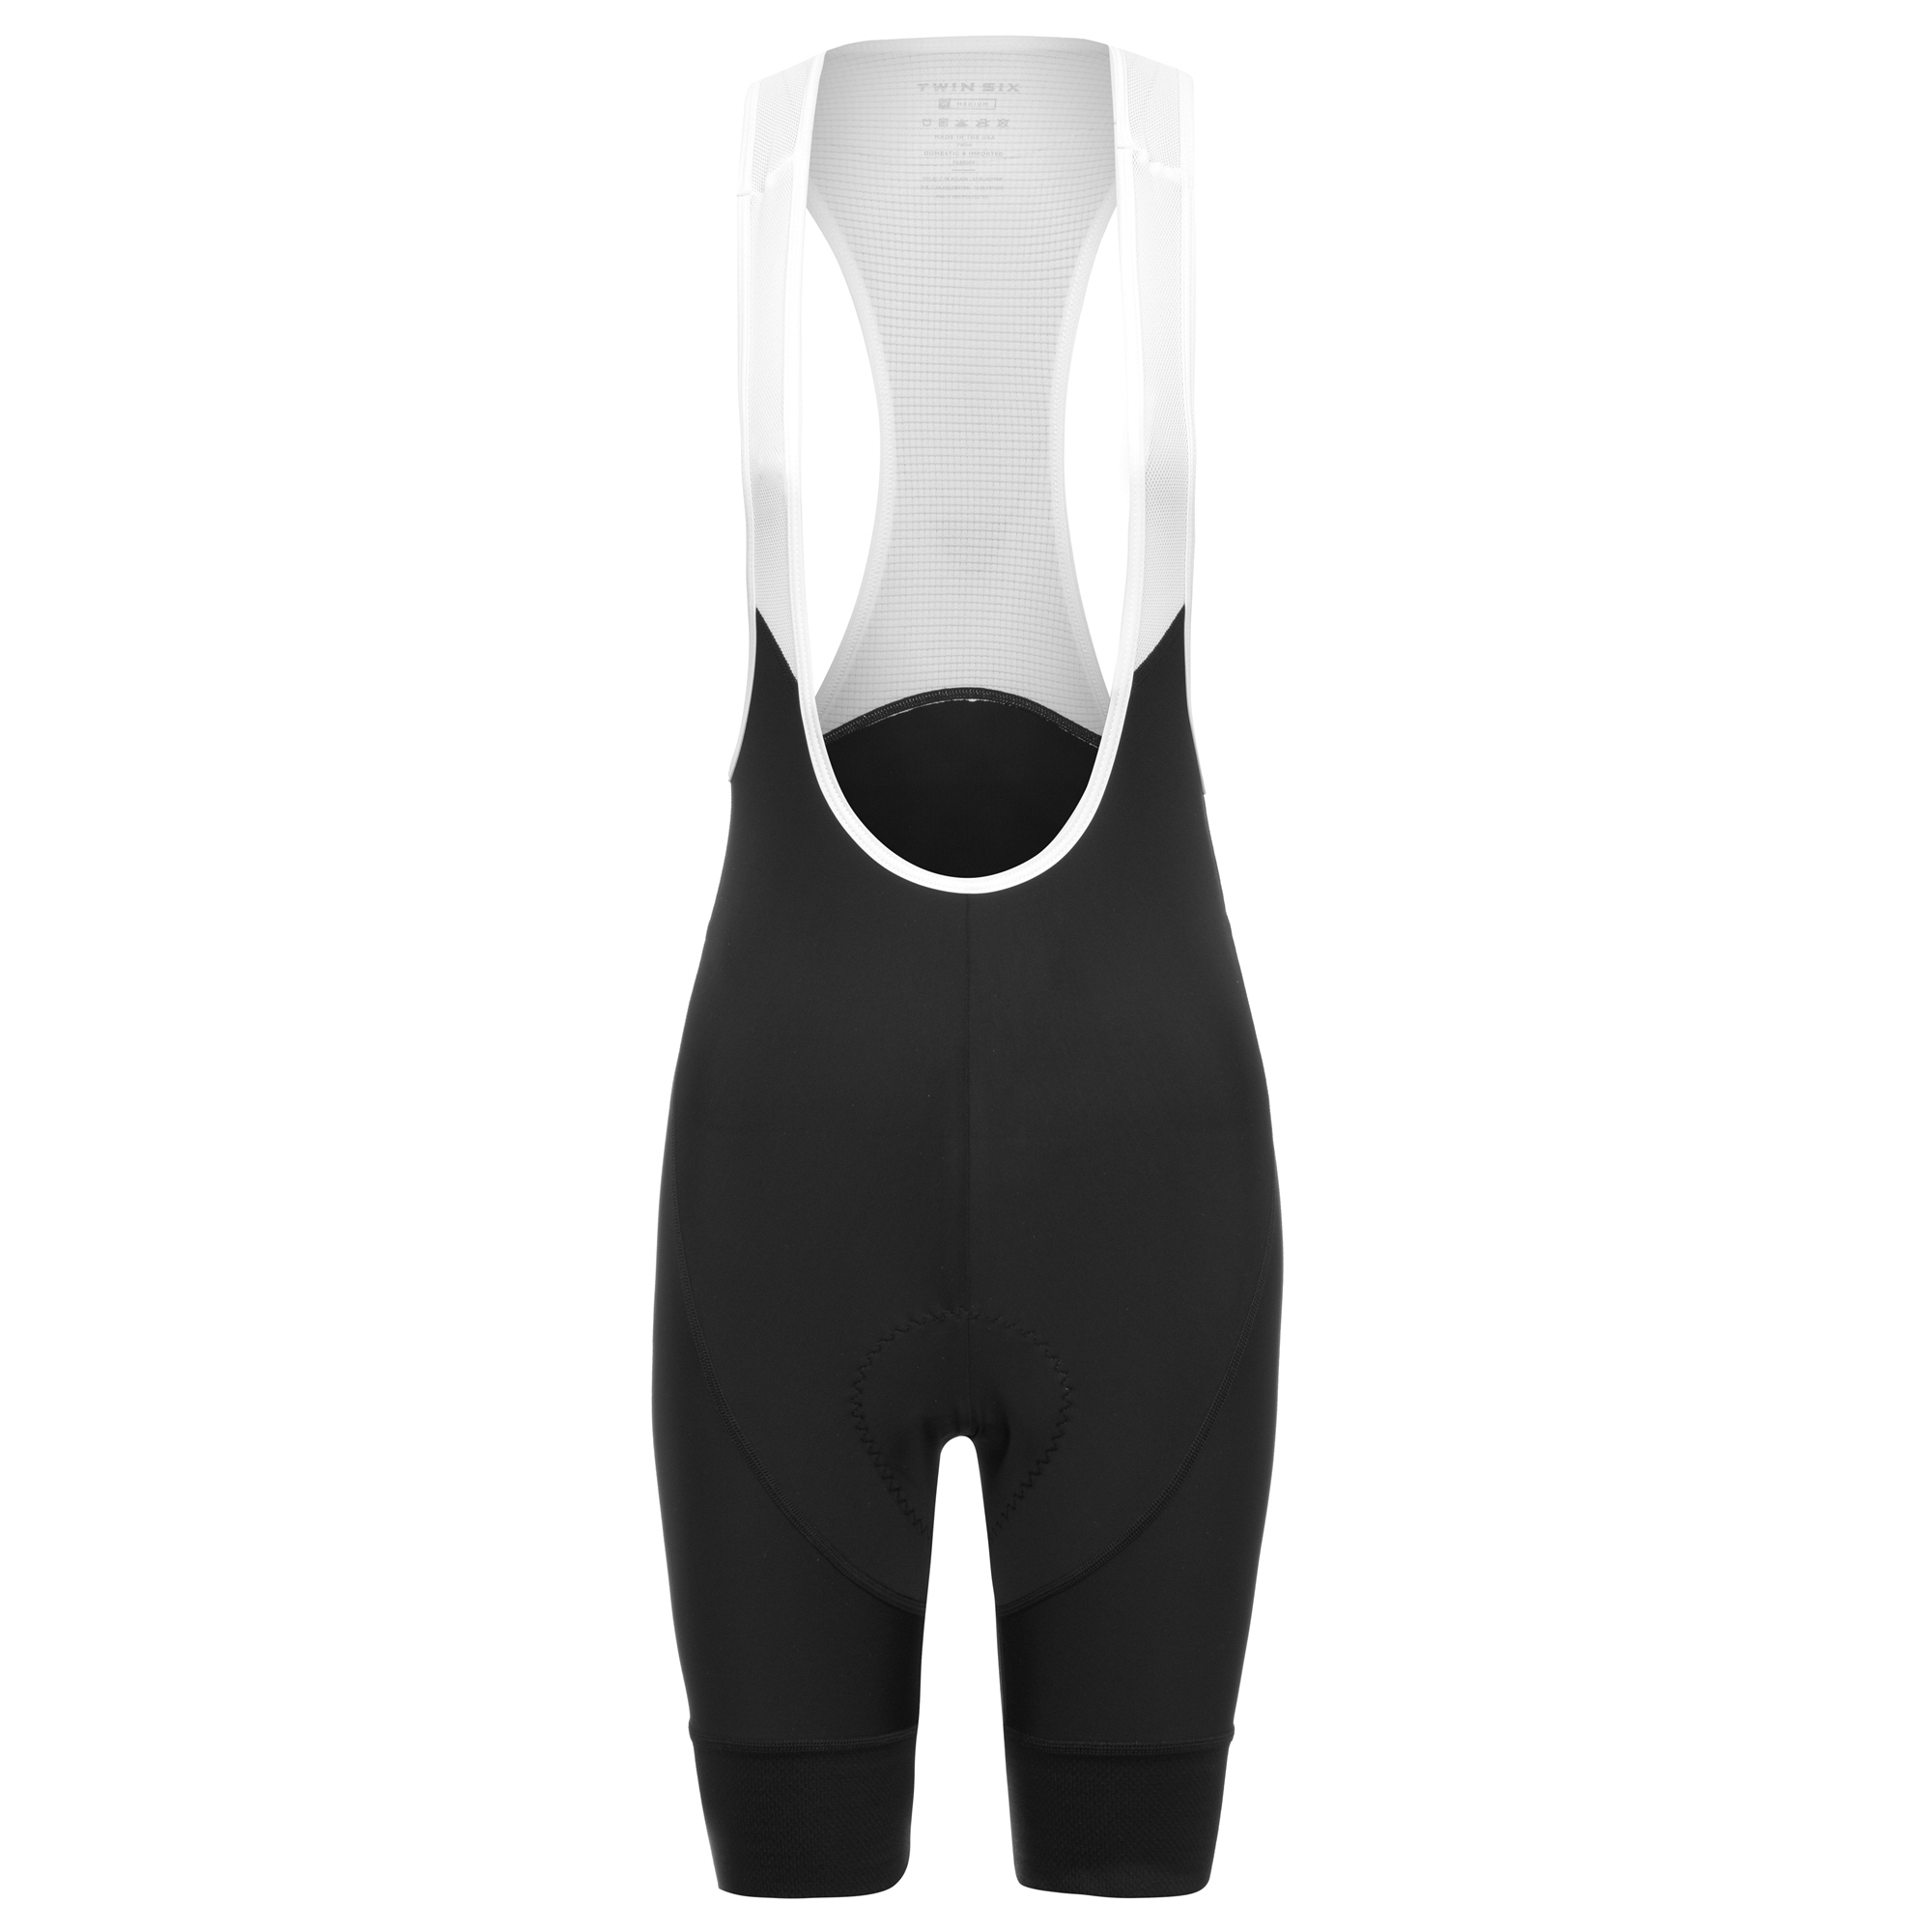 Twin Six Women's Standard Race Bib Shorts | Trousers